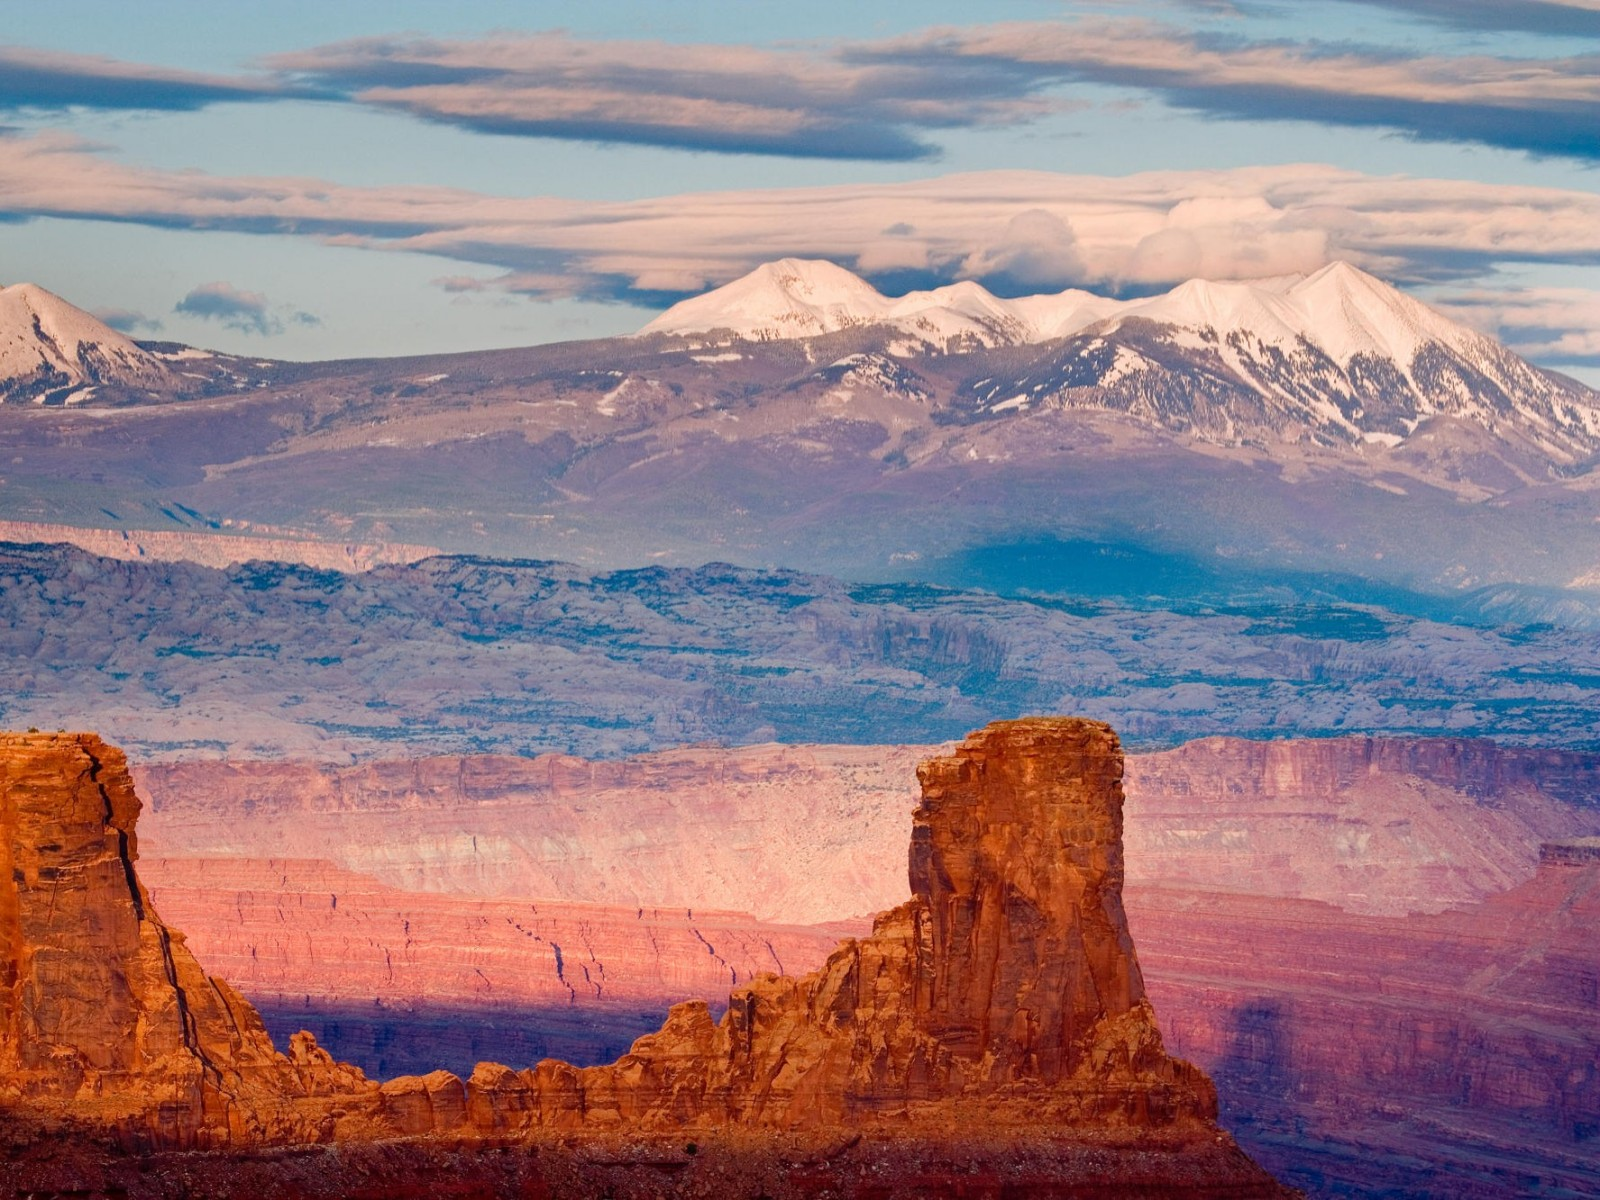 Utah photo wallpapers - La Sal Mountains From Dead Horse State Park